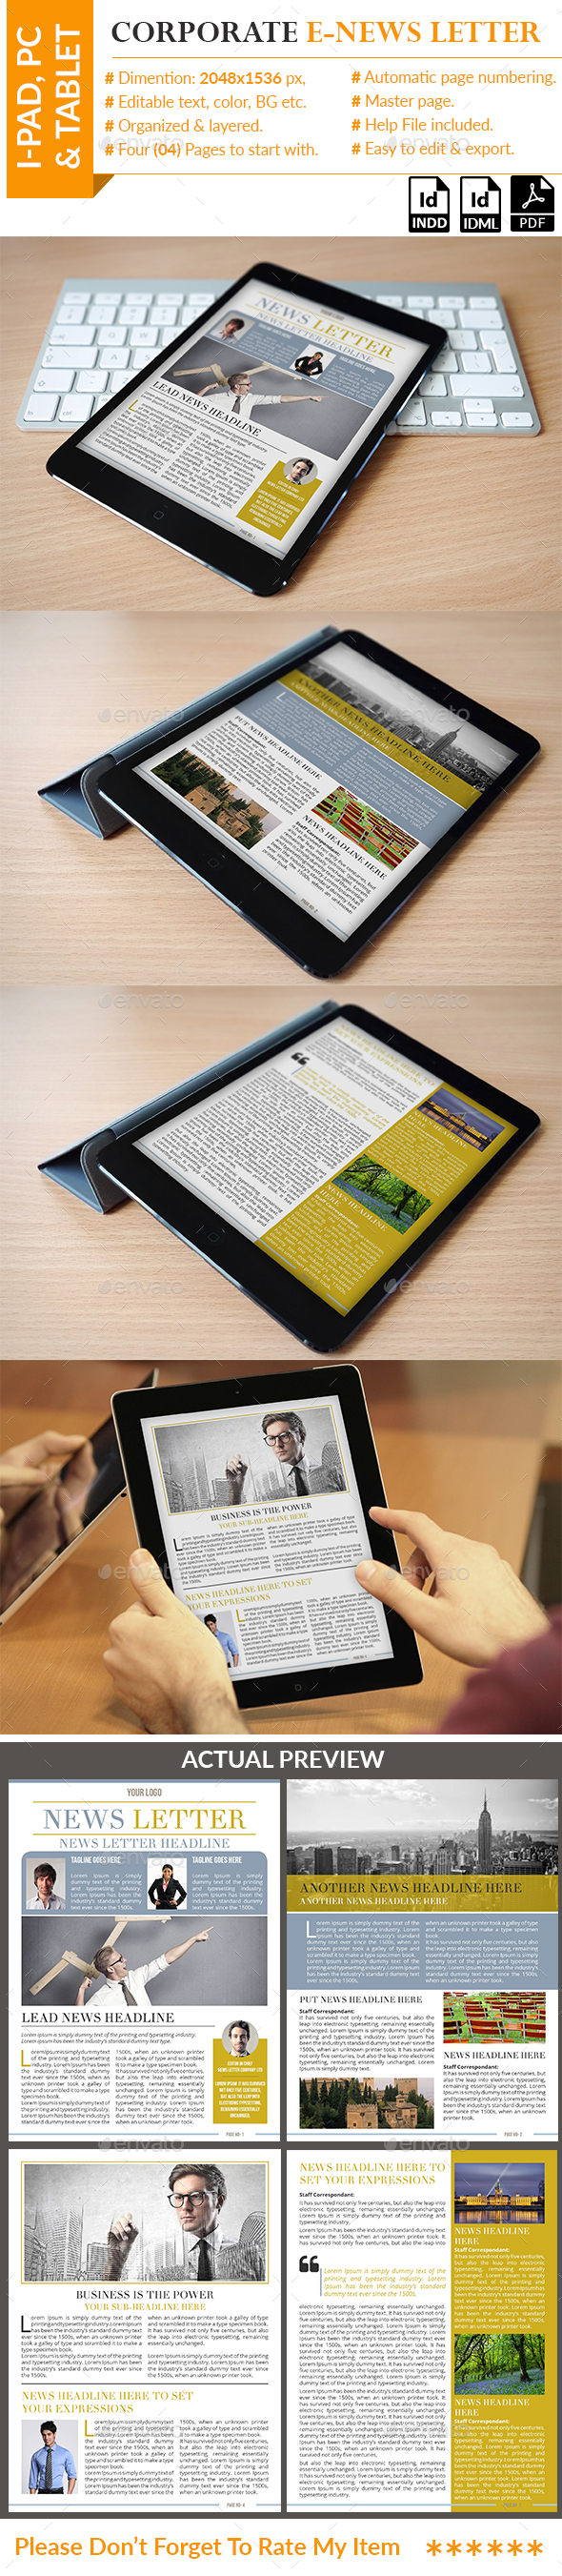 Corporate E-News letter - ePublishing